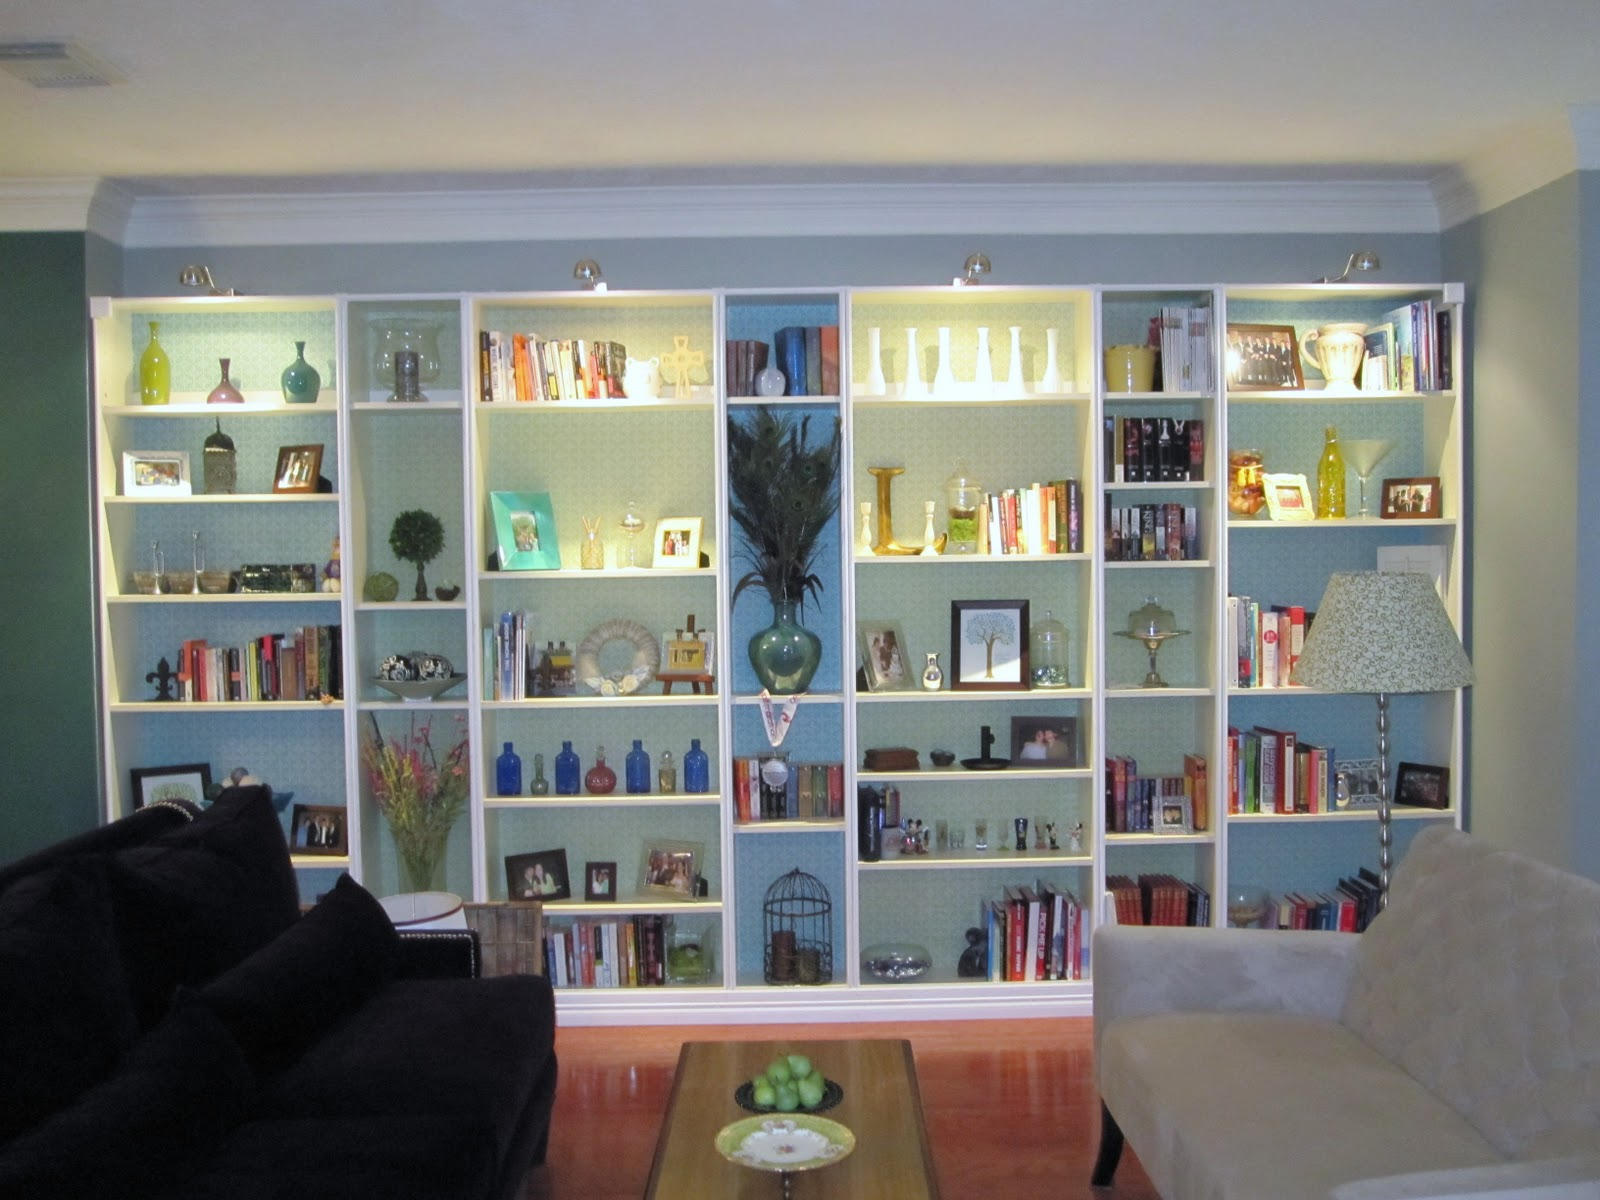 Ikea hack built in bookshelves tutorial the lazy owl Where to put a bookcase in a room